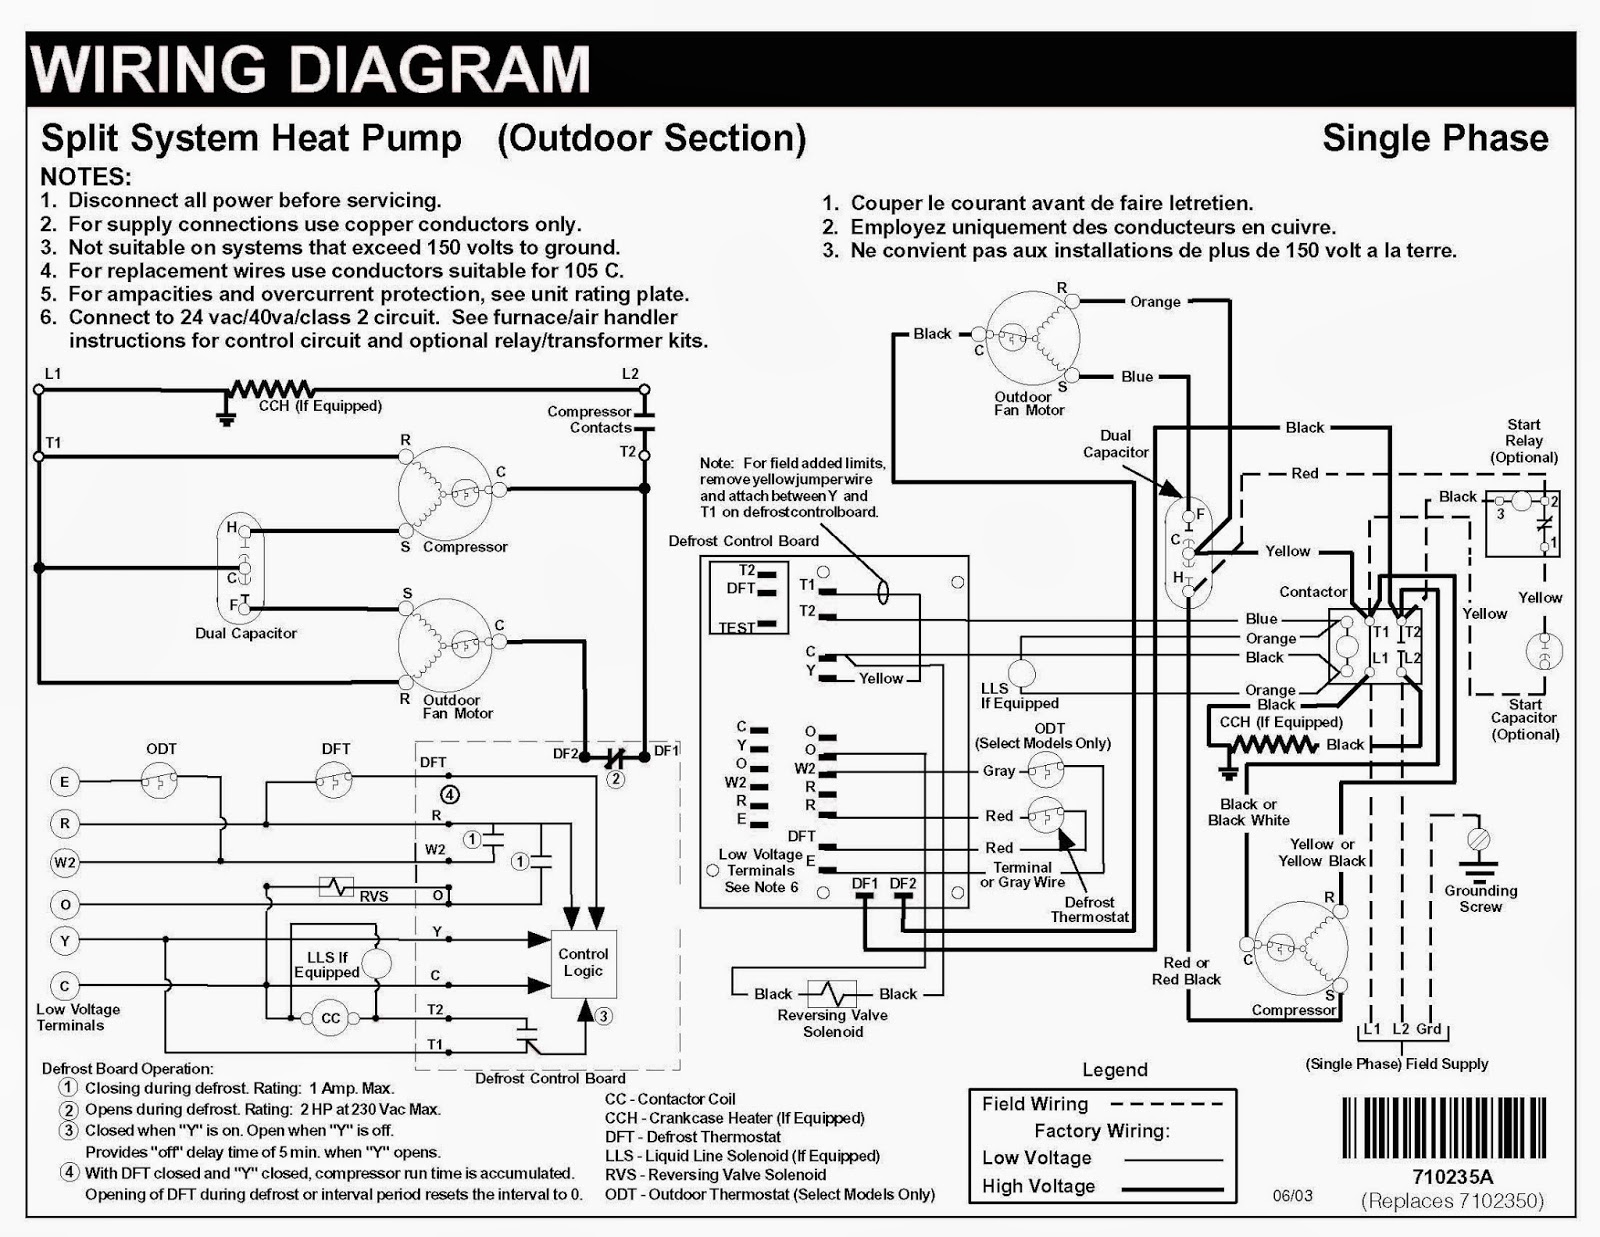 nordyne ac wiring diagram nordyne image wiring diagram wiring diagram for ac to furnace the wiring diagram on nordyne ac wiring diagram